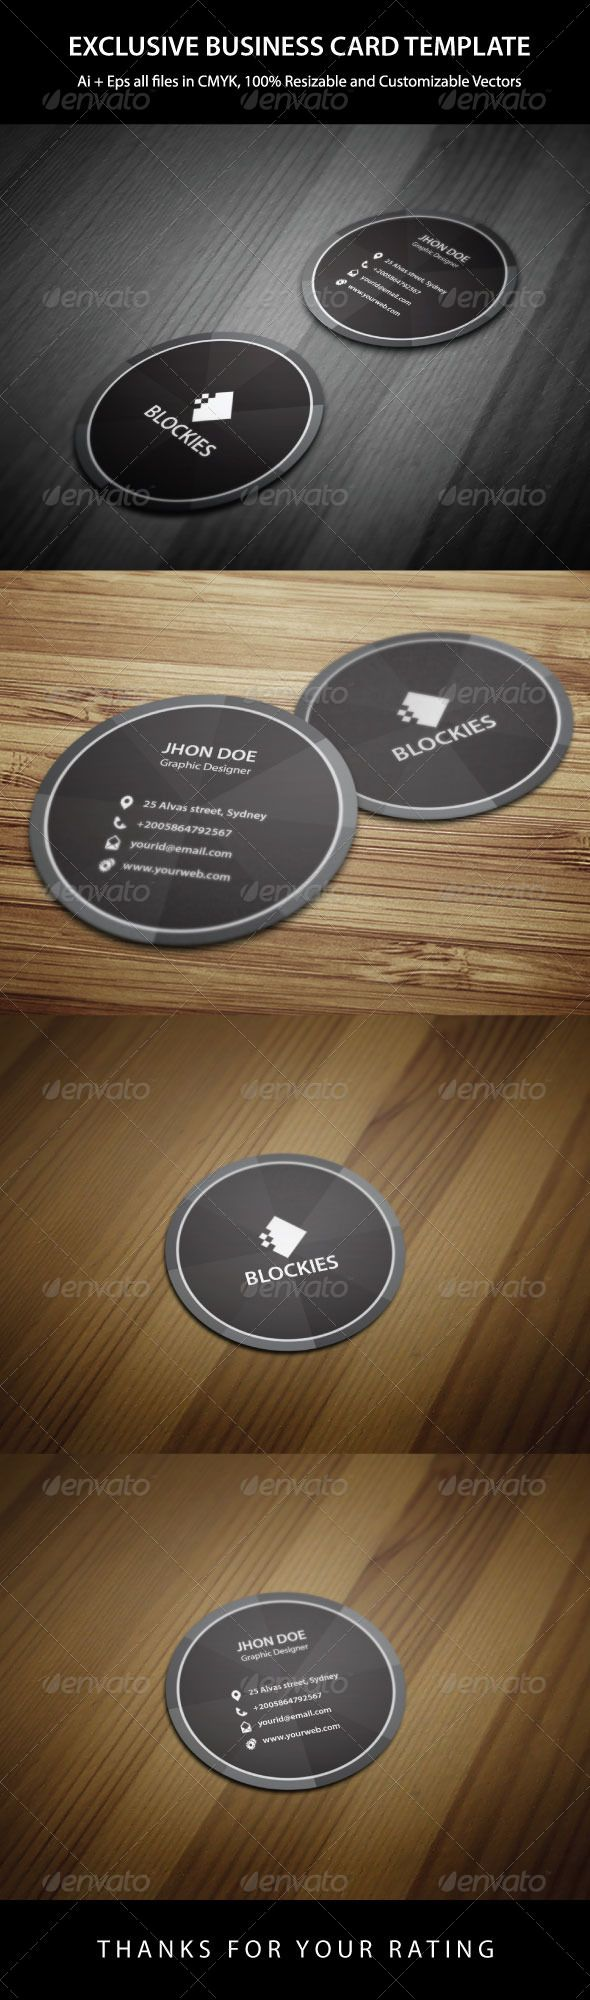 Exclusive Circle Business Card Business Cards Card Templates - Round business card template